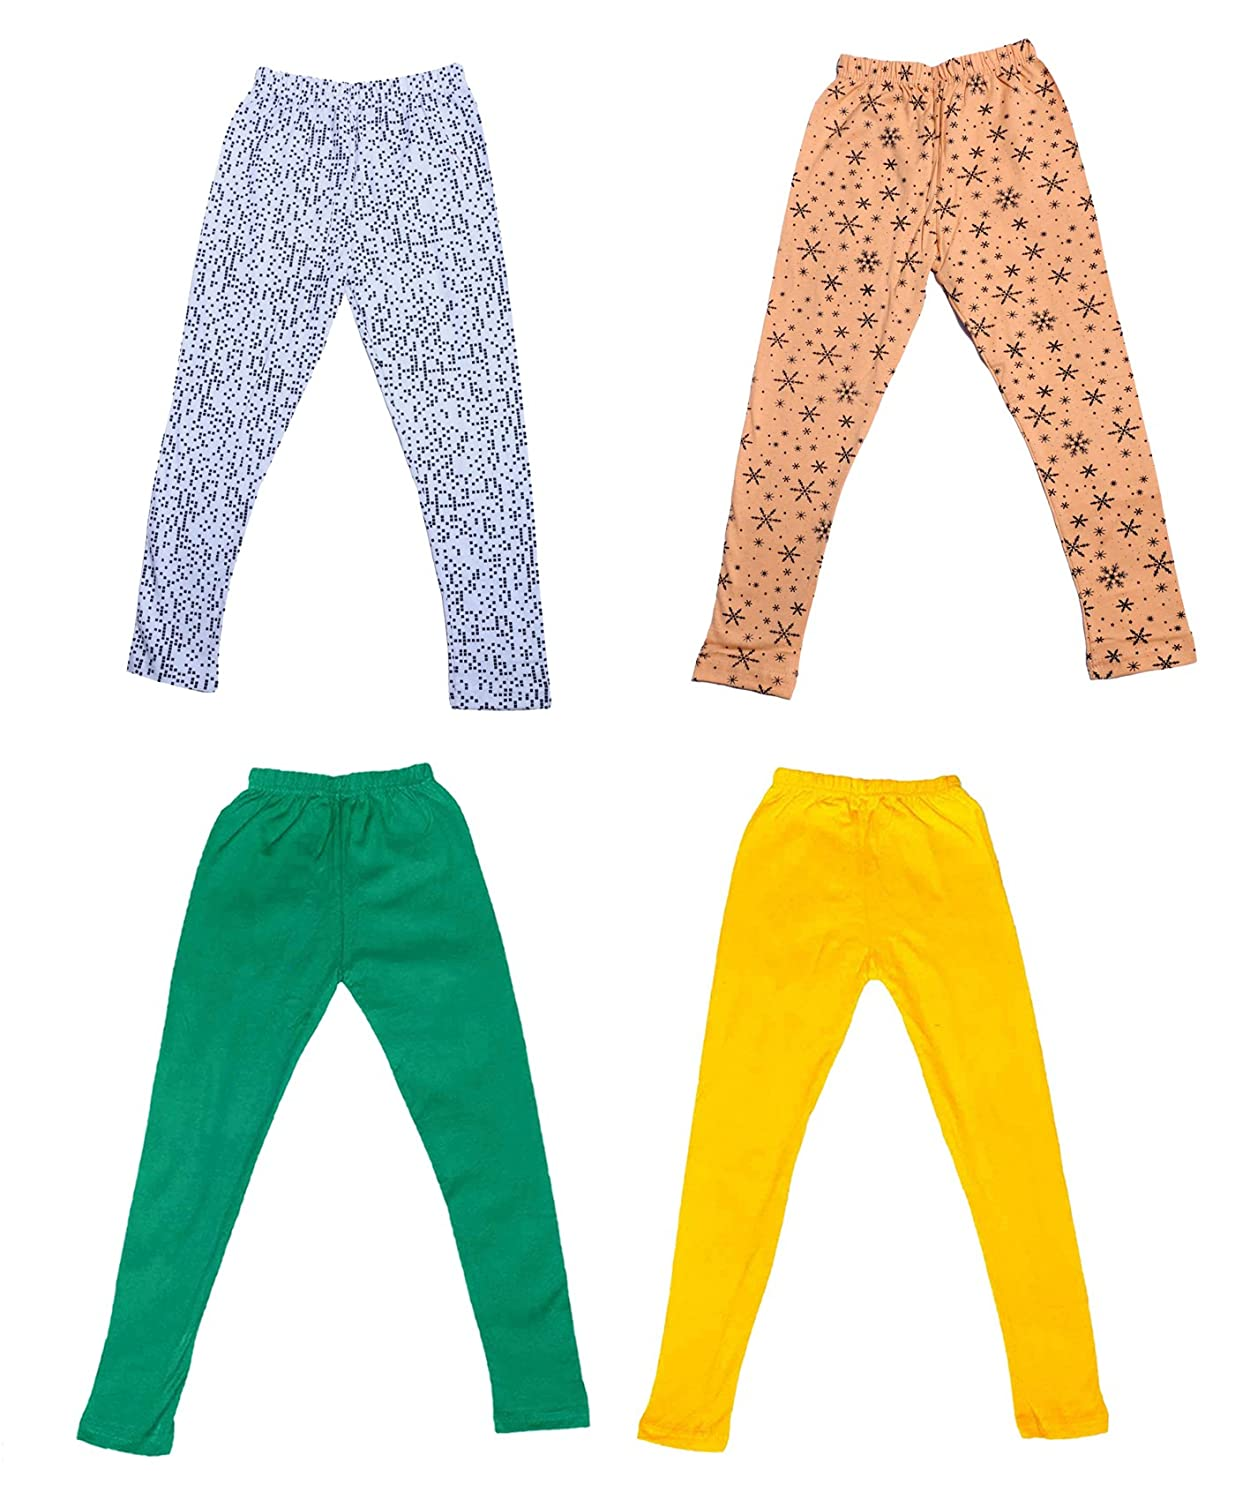 /_Multicolor/_Size-4-5 Years/_71406071921-IW-P4-26 Pack Of 4 and 2 Cotton Printed Legging Pants Indistar Girls 2 Cotton Solid Legging Pants